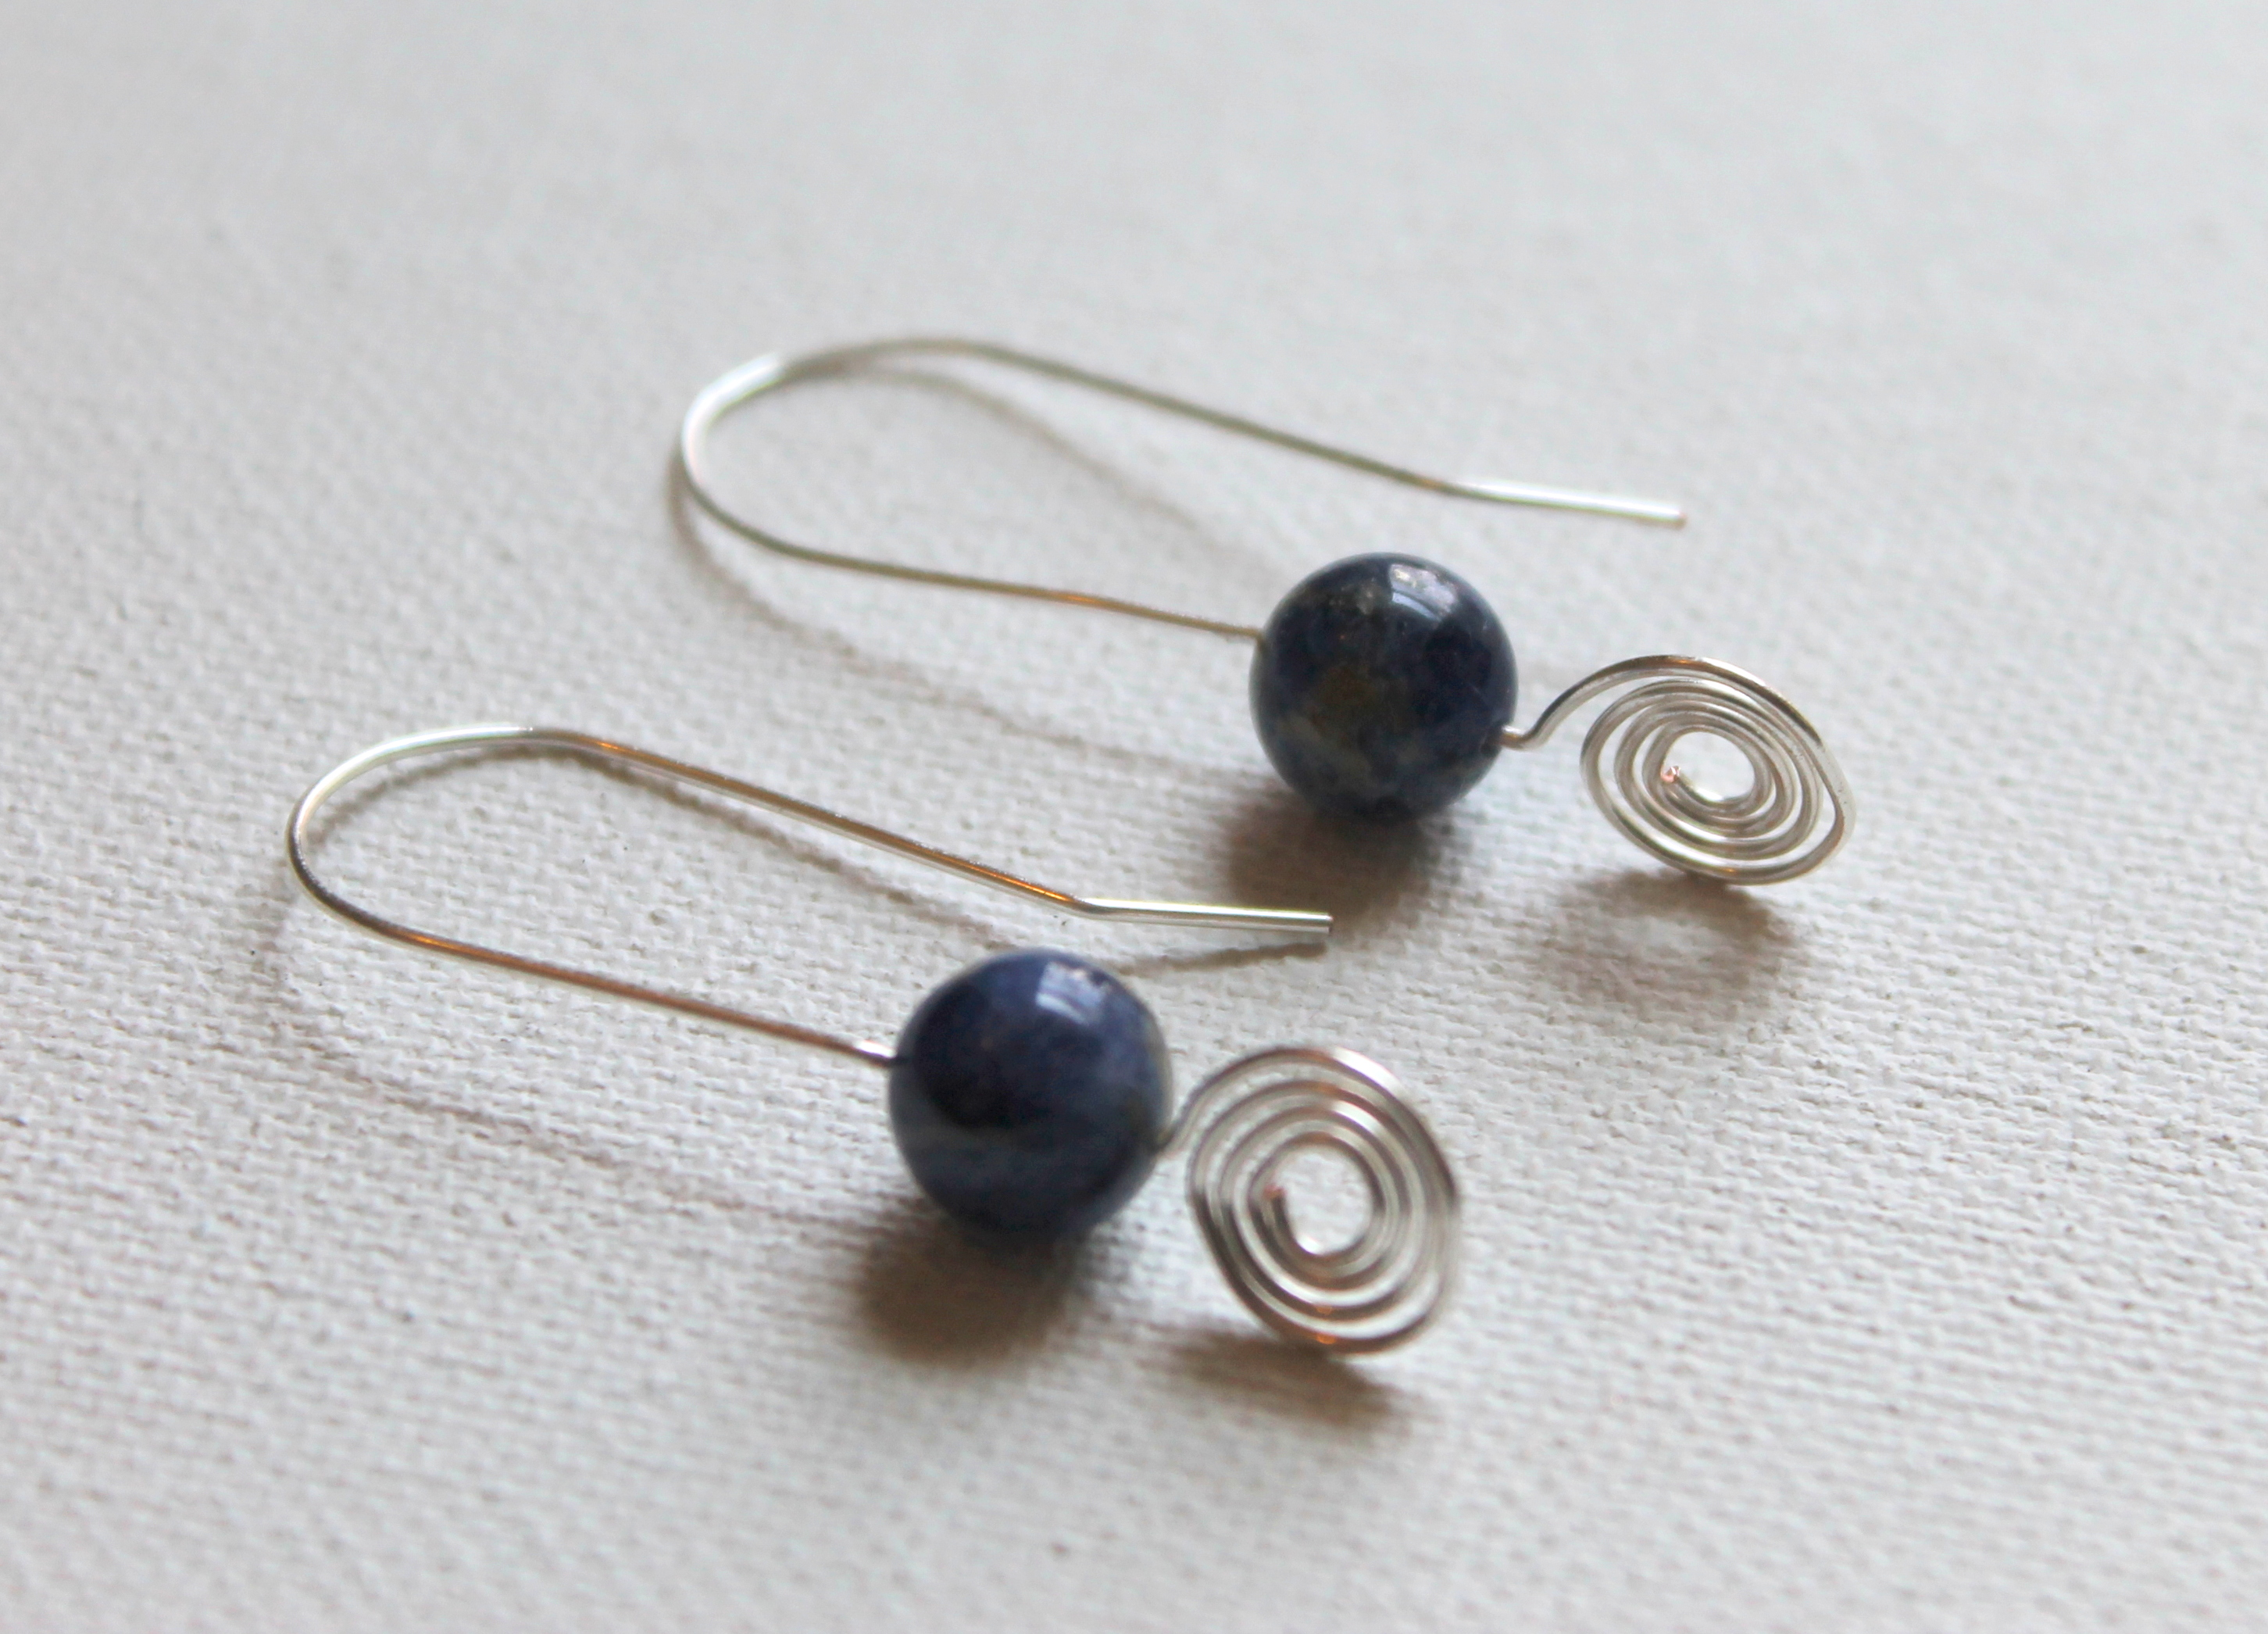 Simple Earrings Combining Two Ideas | Emerging Creatively Jewelry ...